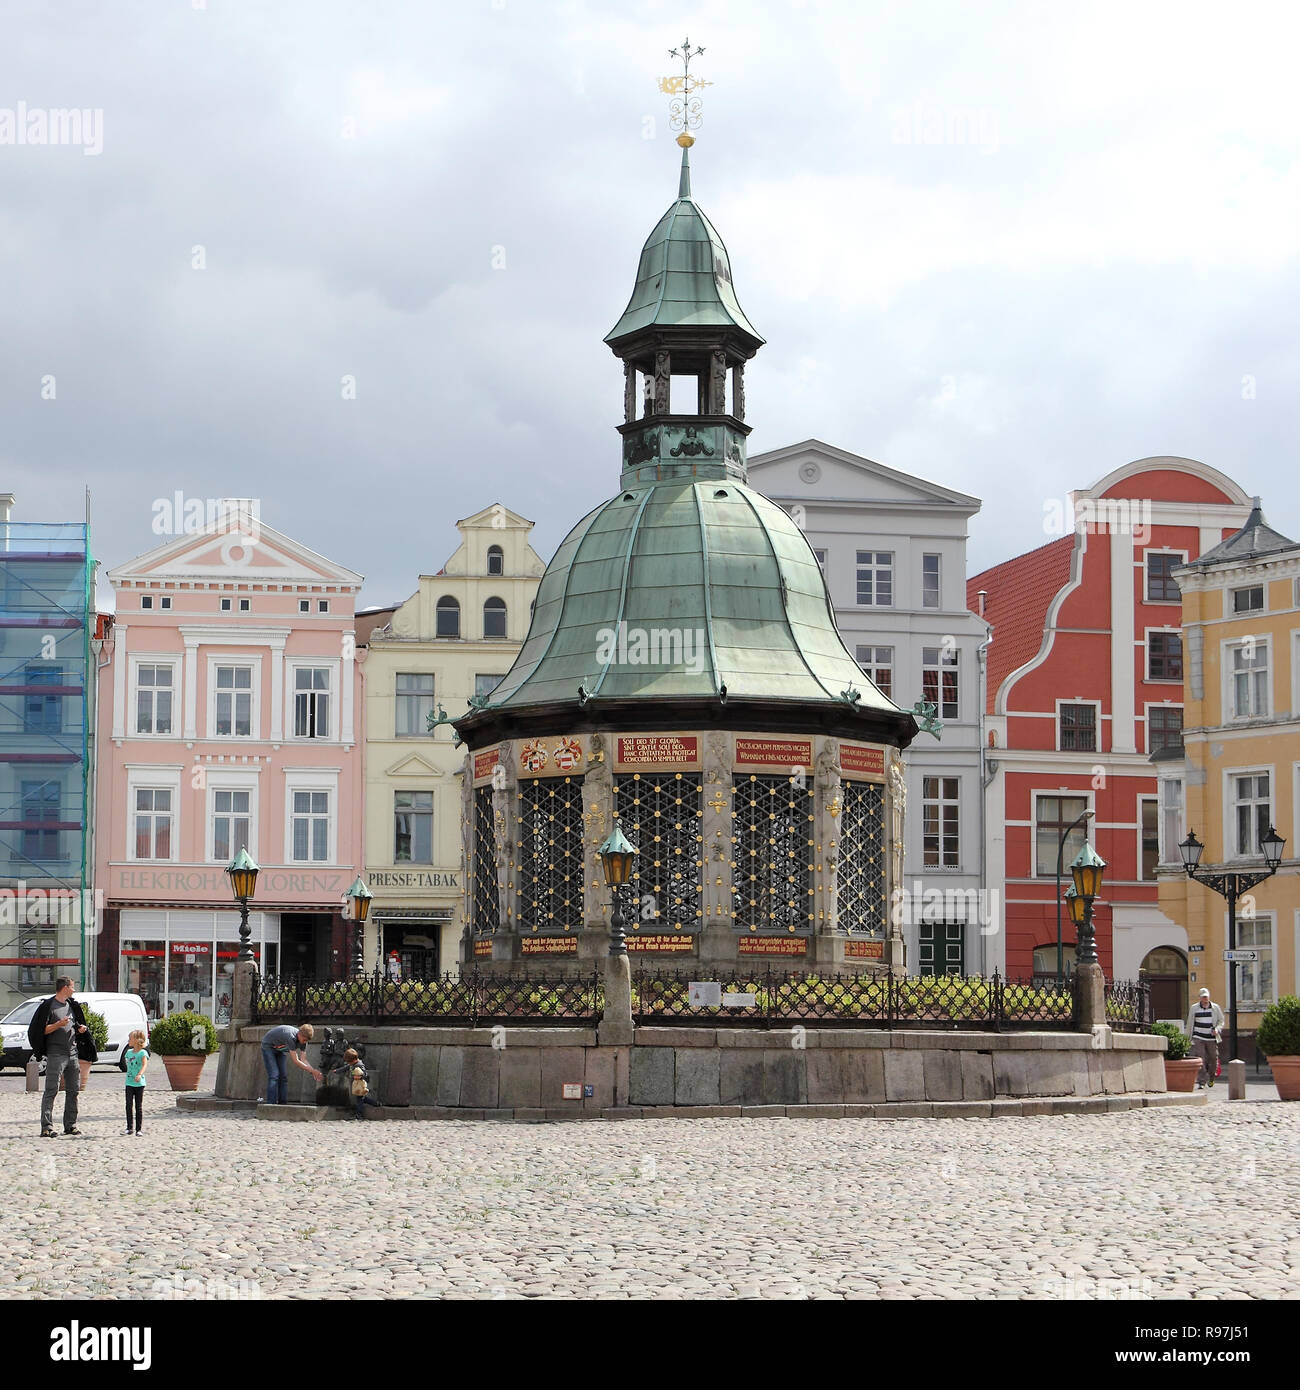 The famous waterworks at market place of Wismar - Stock Image